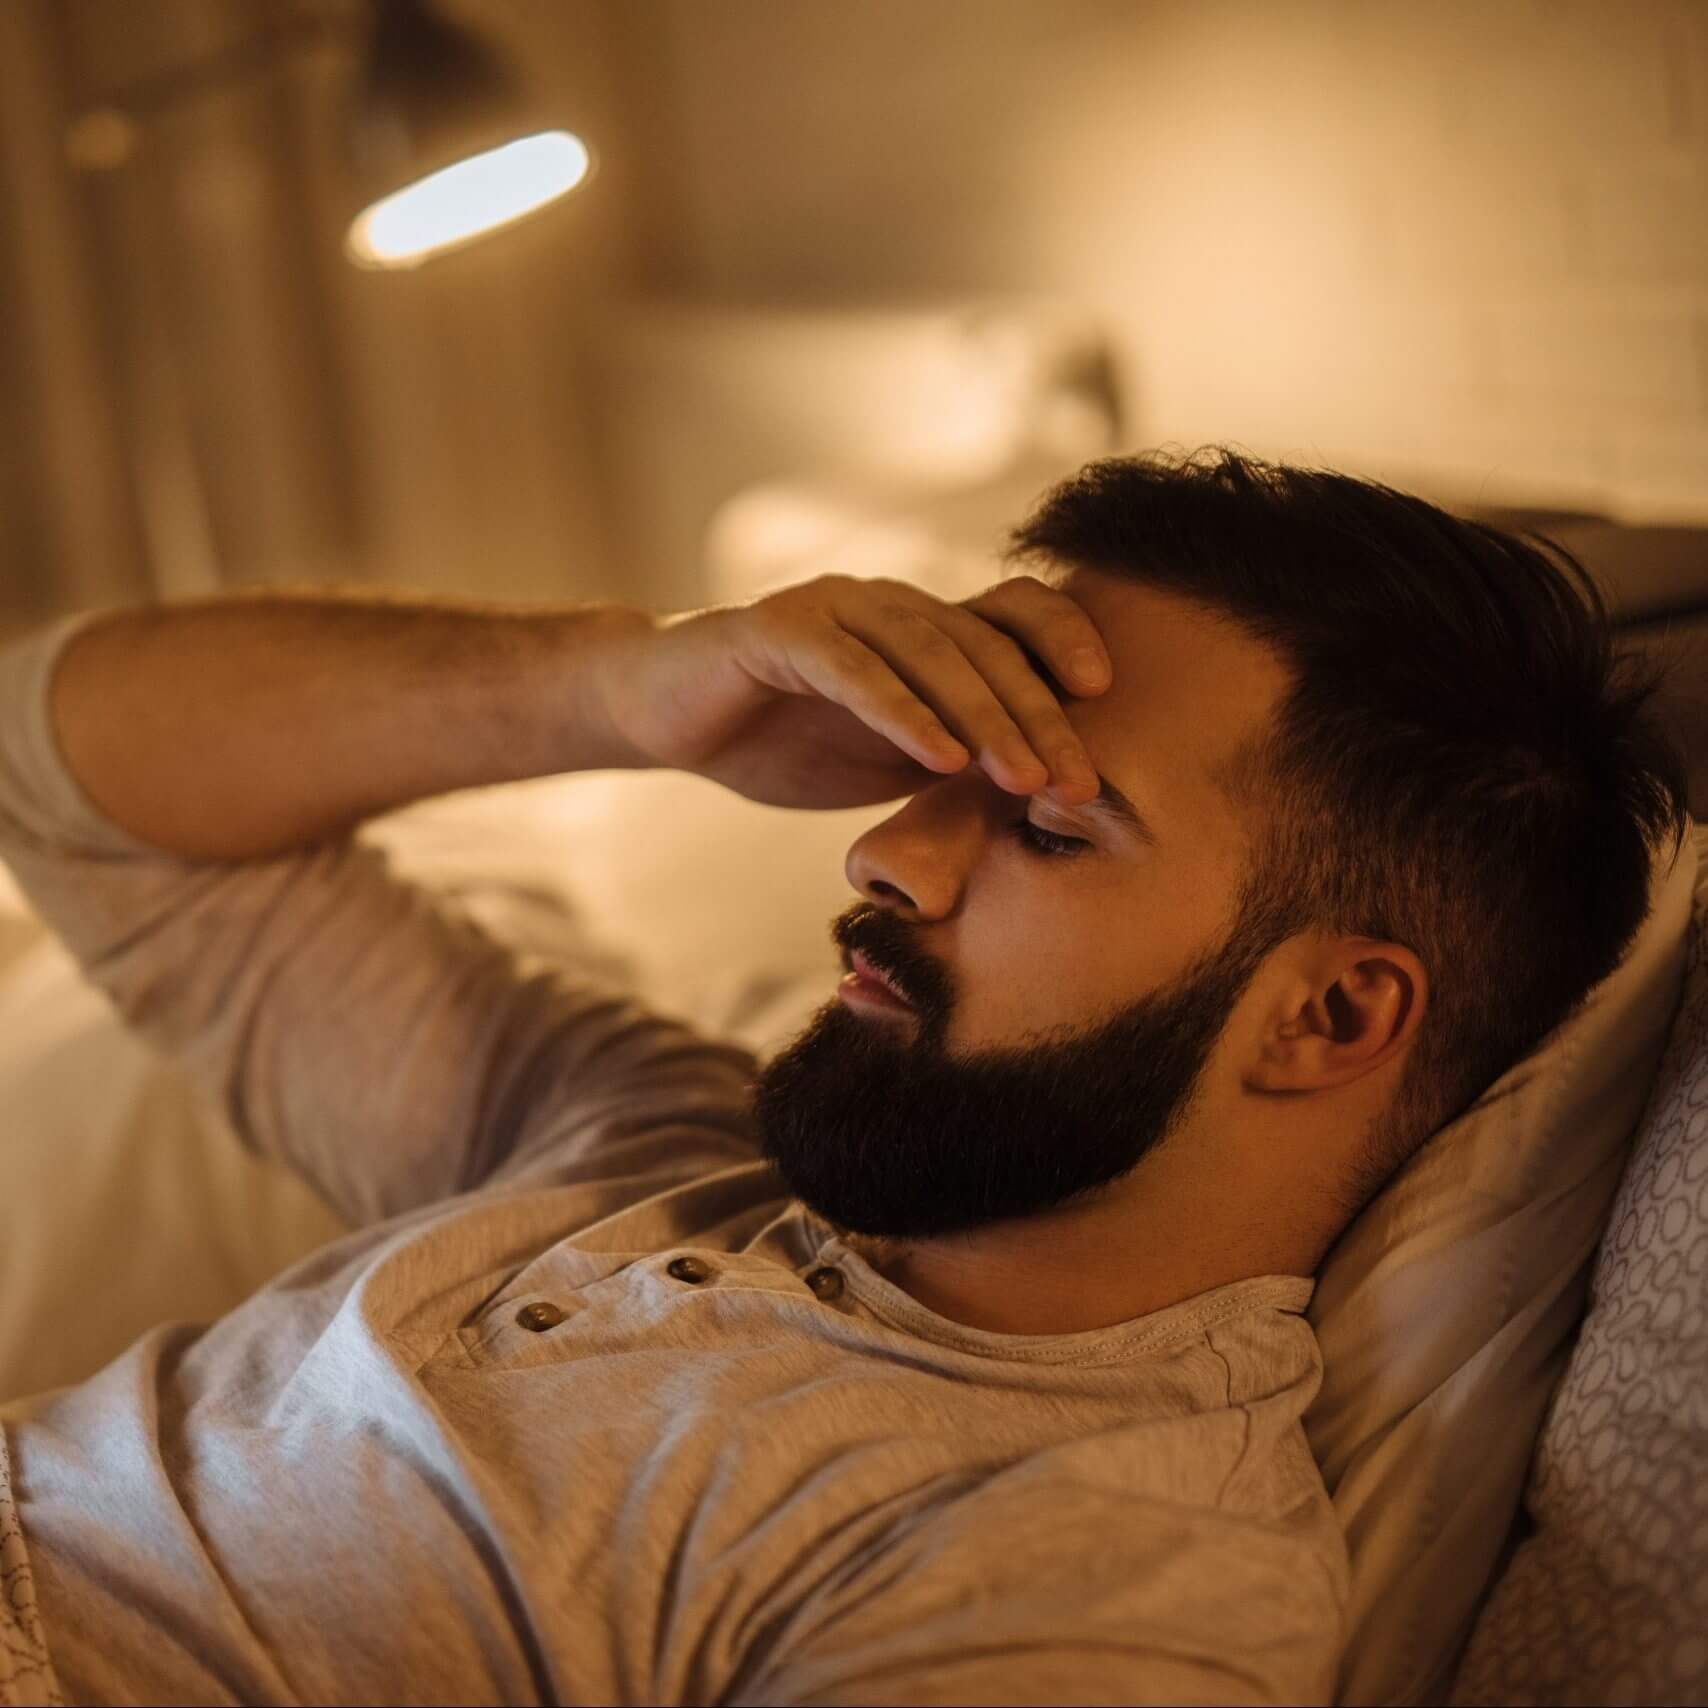 Man lying in bed using personal phone for business text messaging